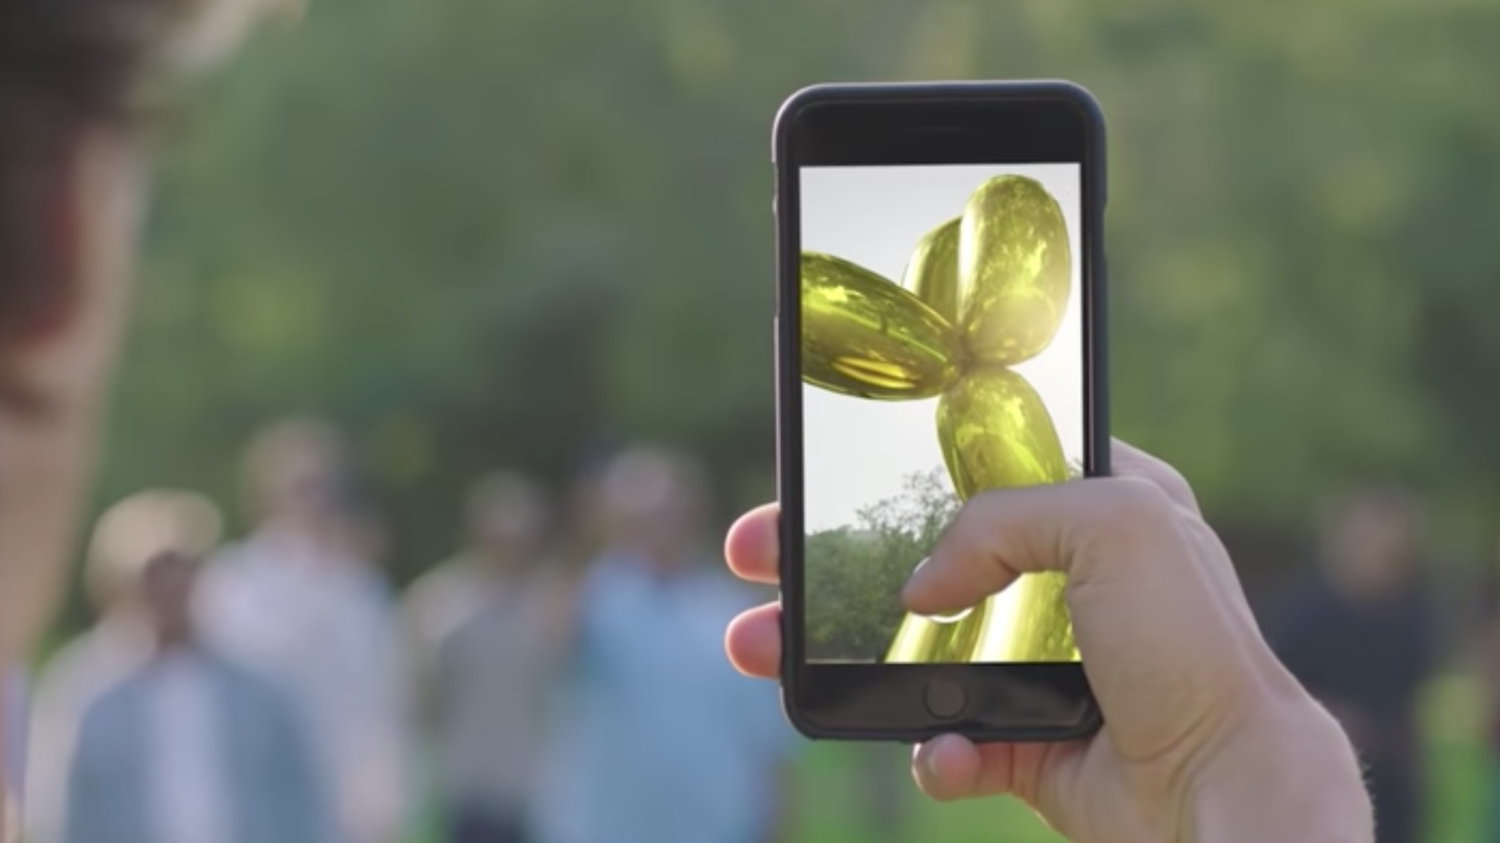 Snapchat and Jeff Koons Have Created an Augmented-Reality Art Treasure Hunt